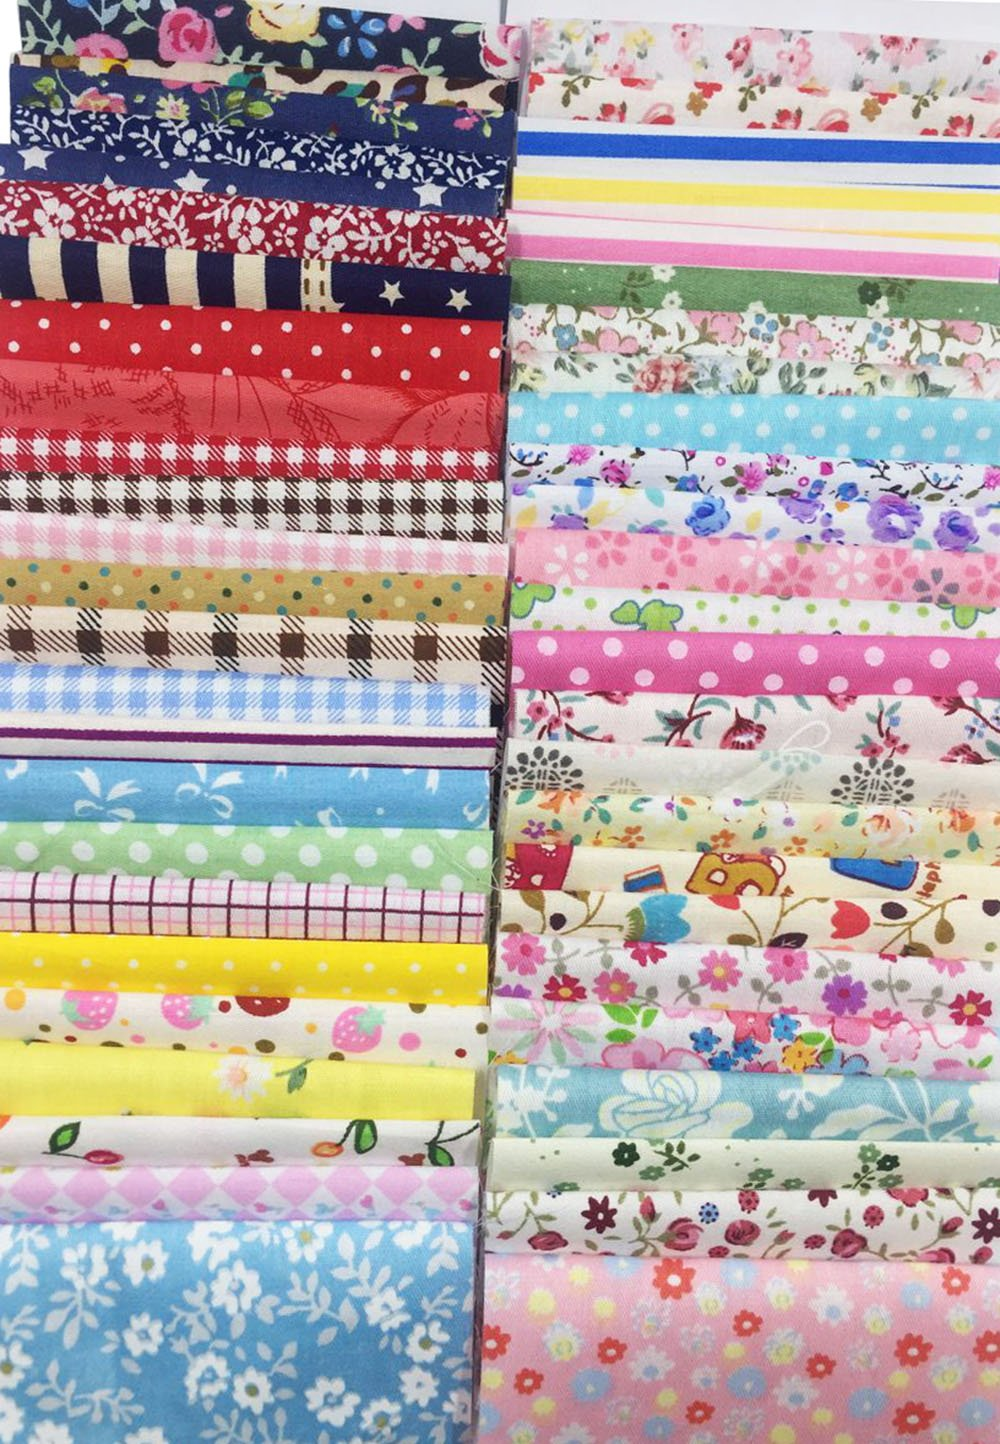 levylisa 200 PCS 4'' x 4''100% Precut Cotton Fabric Bundles, DIY Sewing Quarters Bundle, Cotton Quarter Fabric Bundle, Precut Fabric, Quilting Fabric Bundles, Precut Quilt Kit, Vintage Sheet Supply huabu1515100